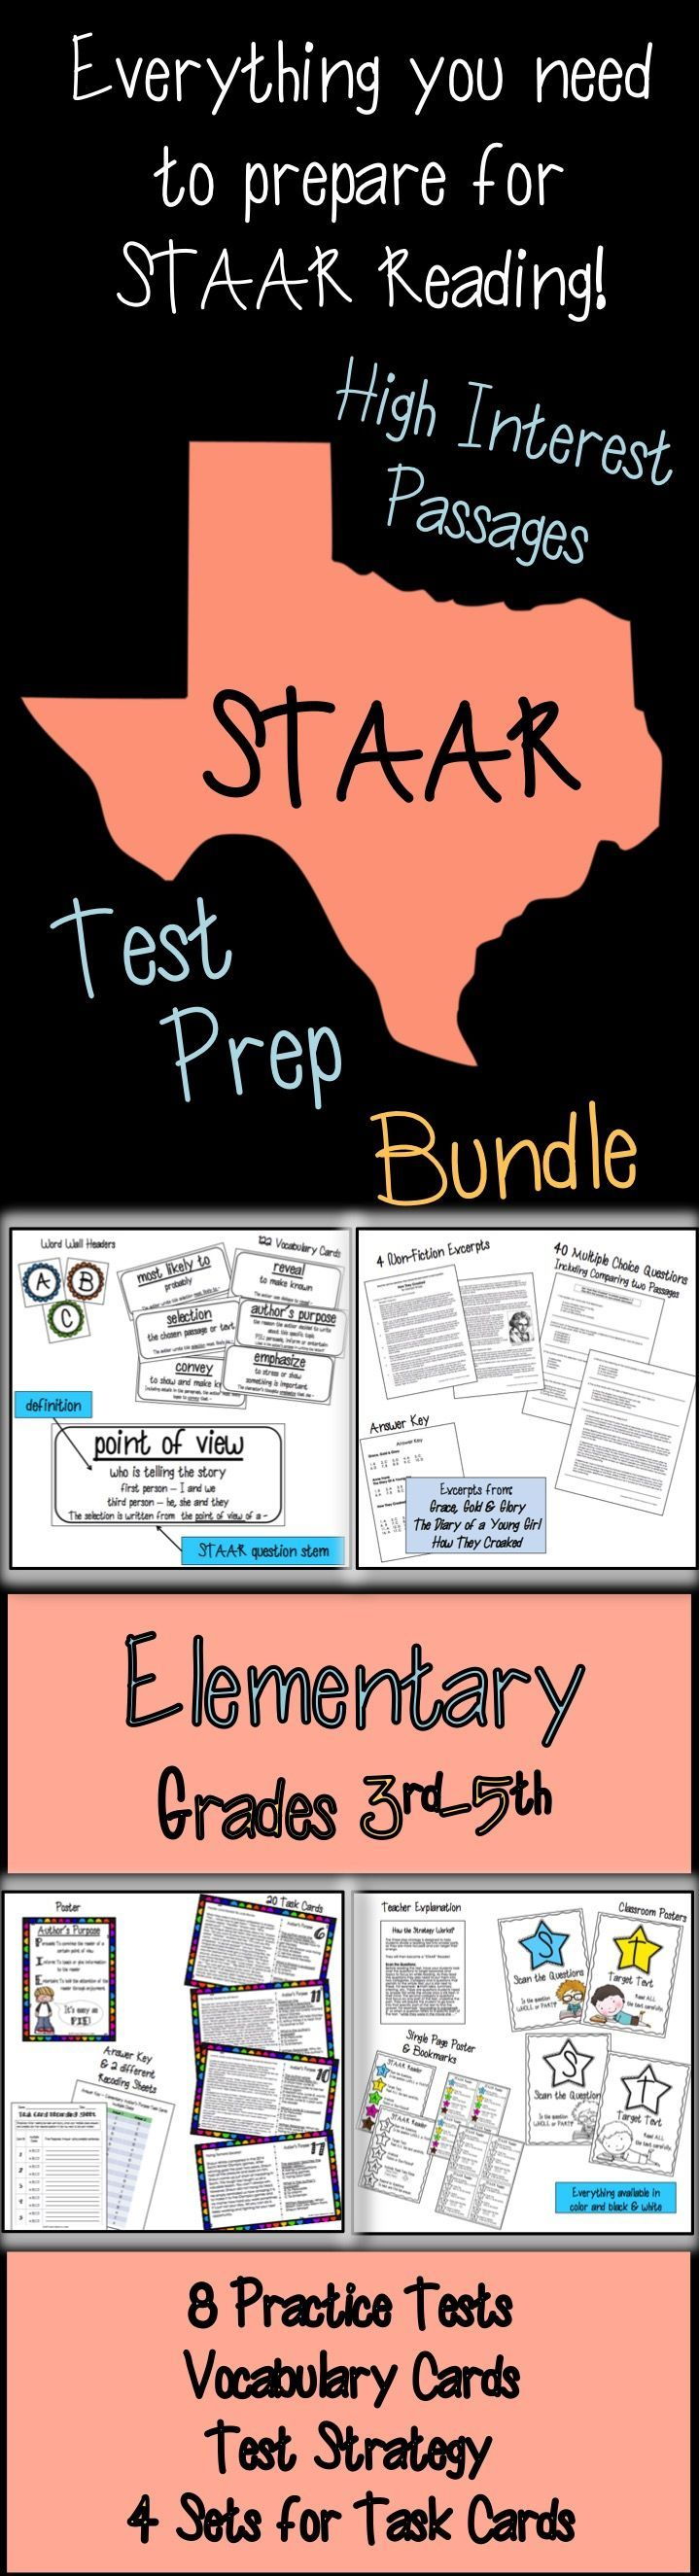 Help your students review and prepare for their STAAR Reading Test in a fun and strategic way! STAAR resources for elementary students! Uses popular chapter books for grades 3-5. Practice Tests, Vocabulary Cards with STAAR question stems, Test Strategy, and Task Cards. Inference, Main Idea, Summarizing, and Author's Purpose.